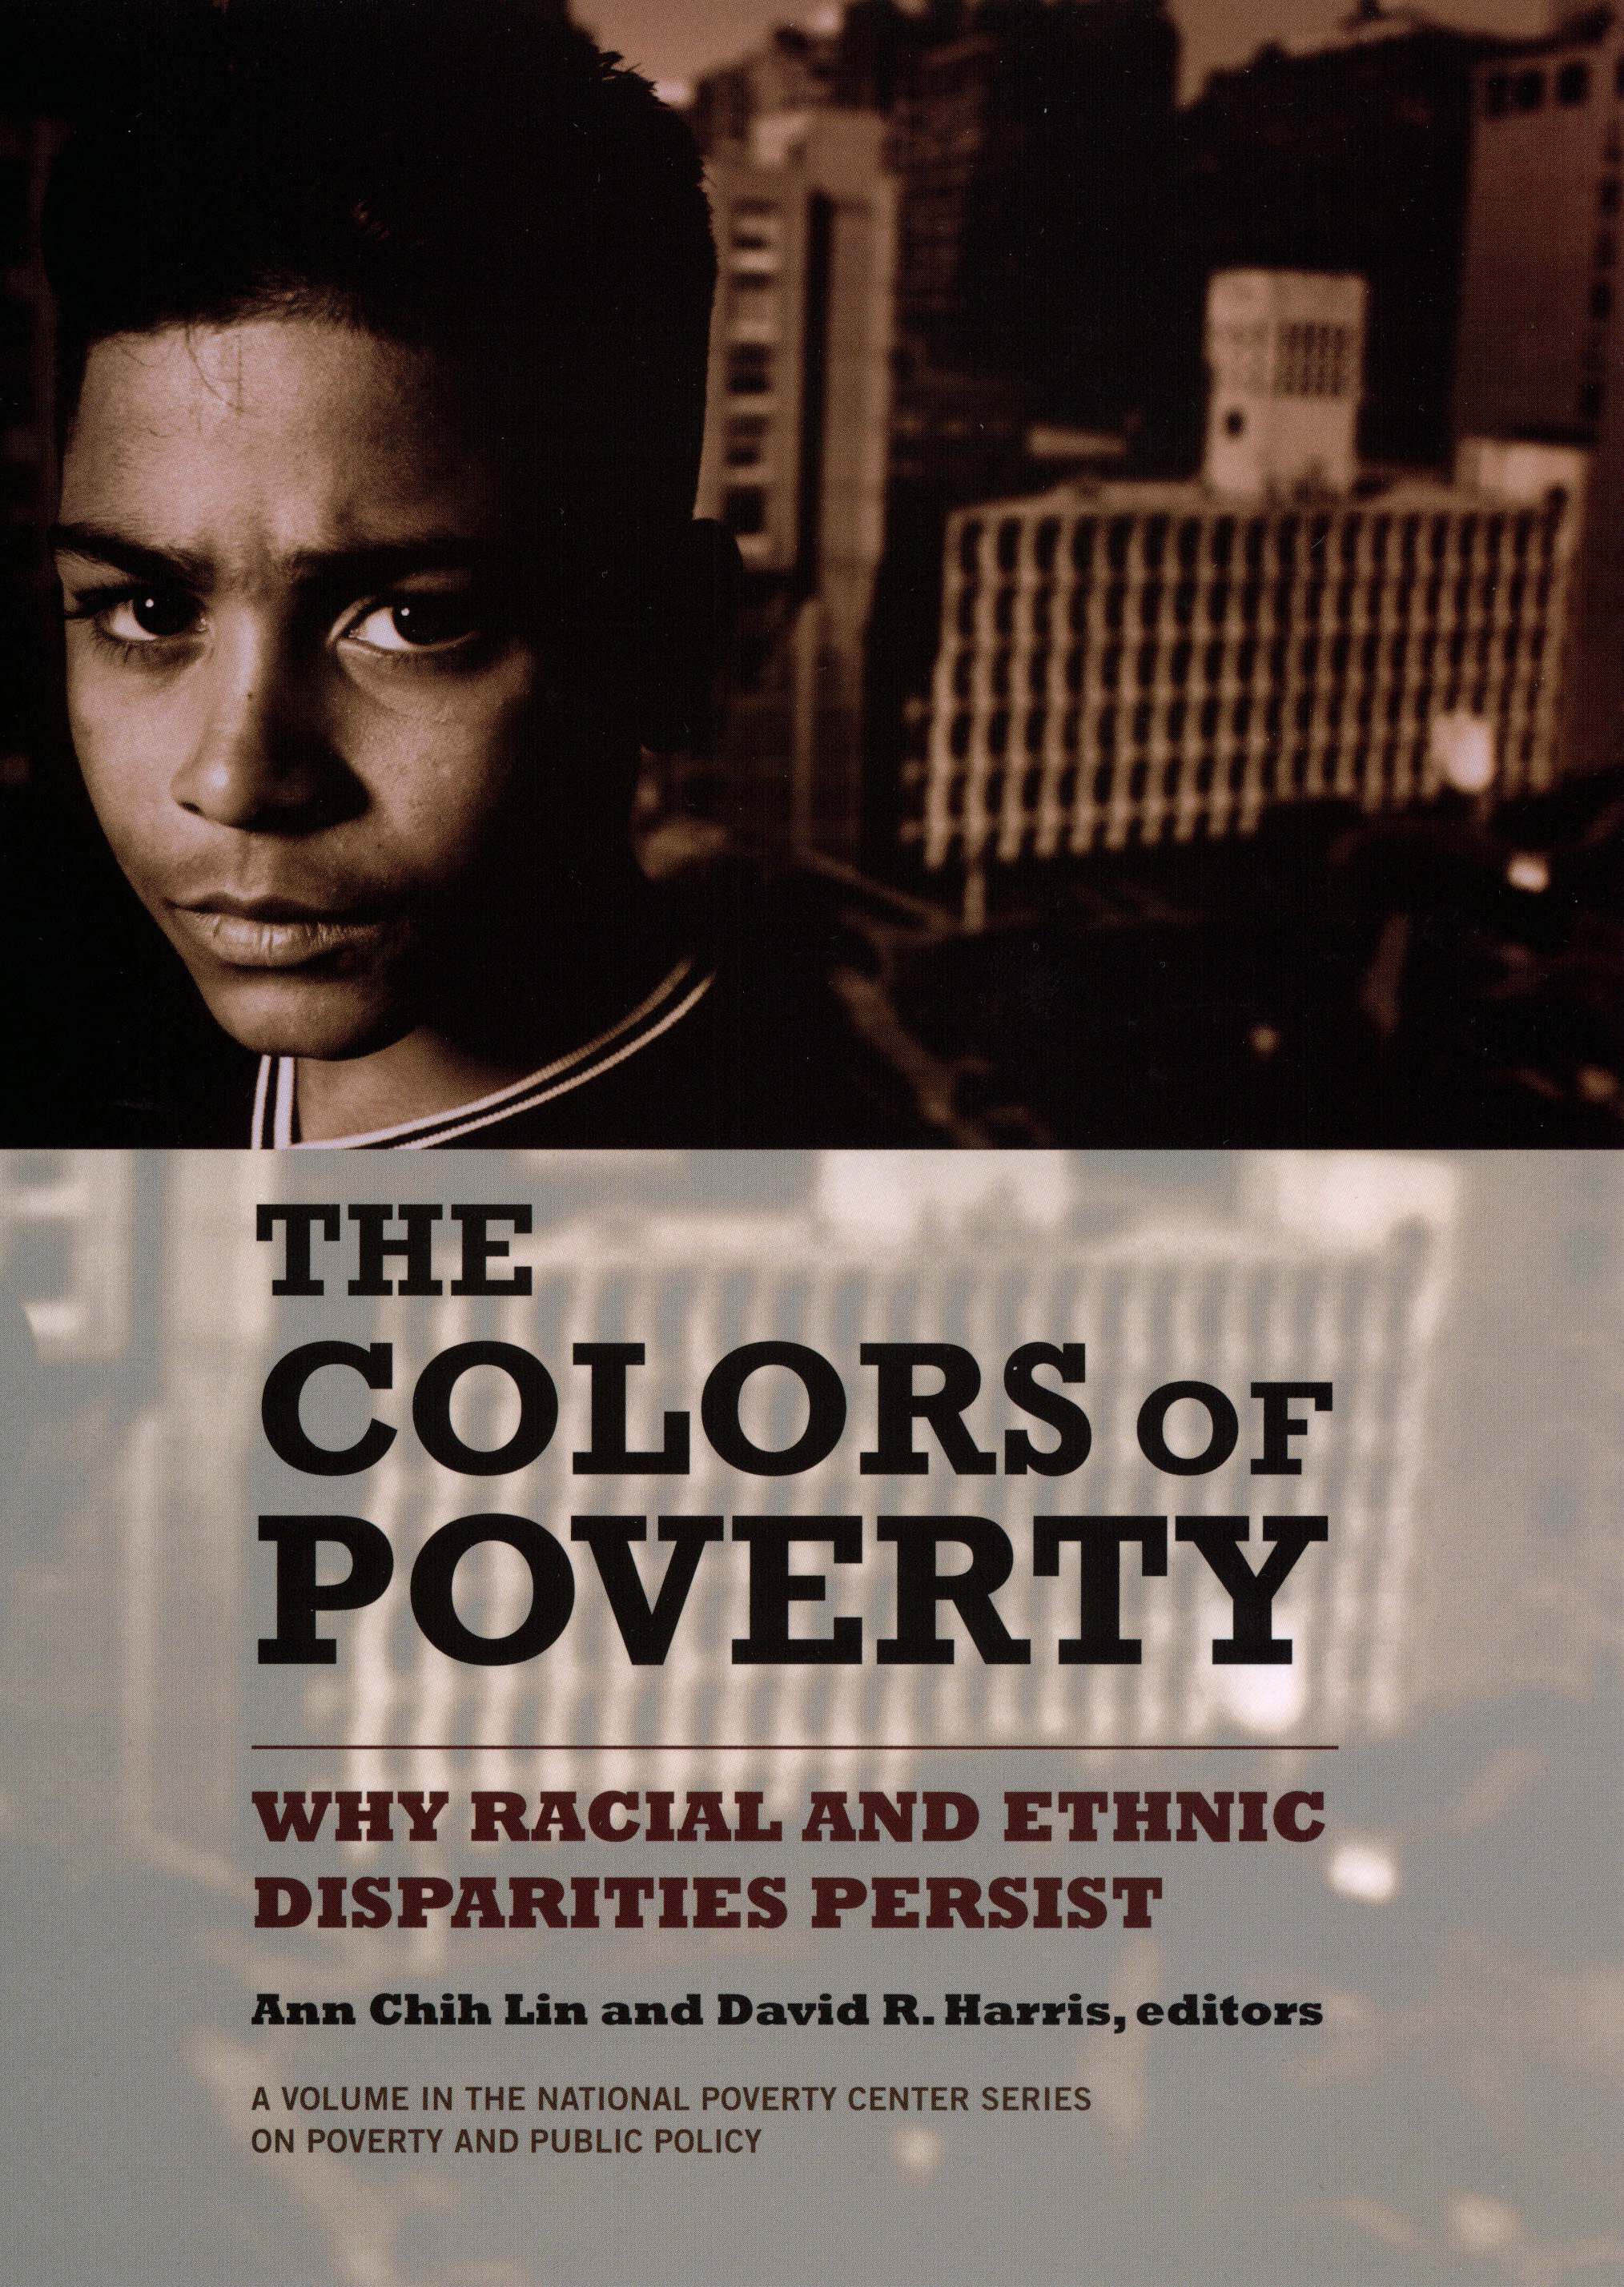 The Colors of Poverty